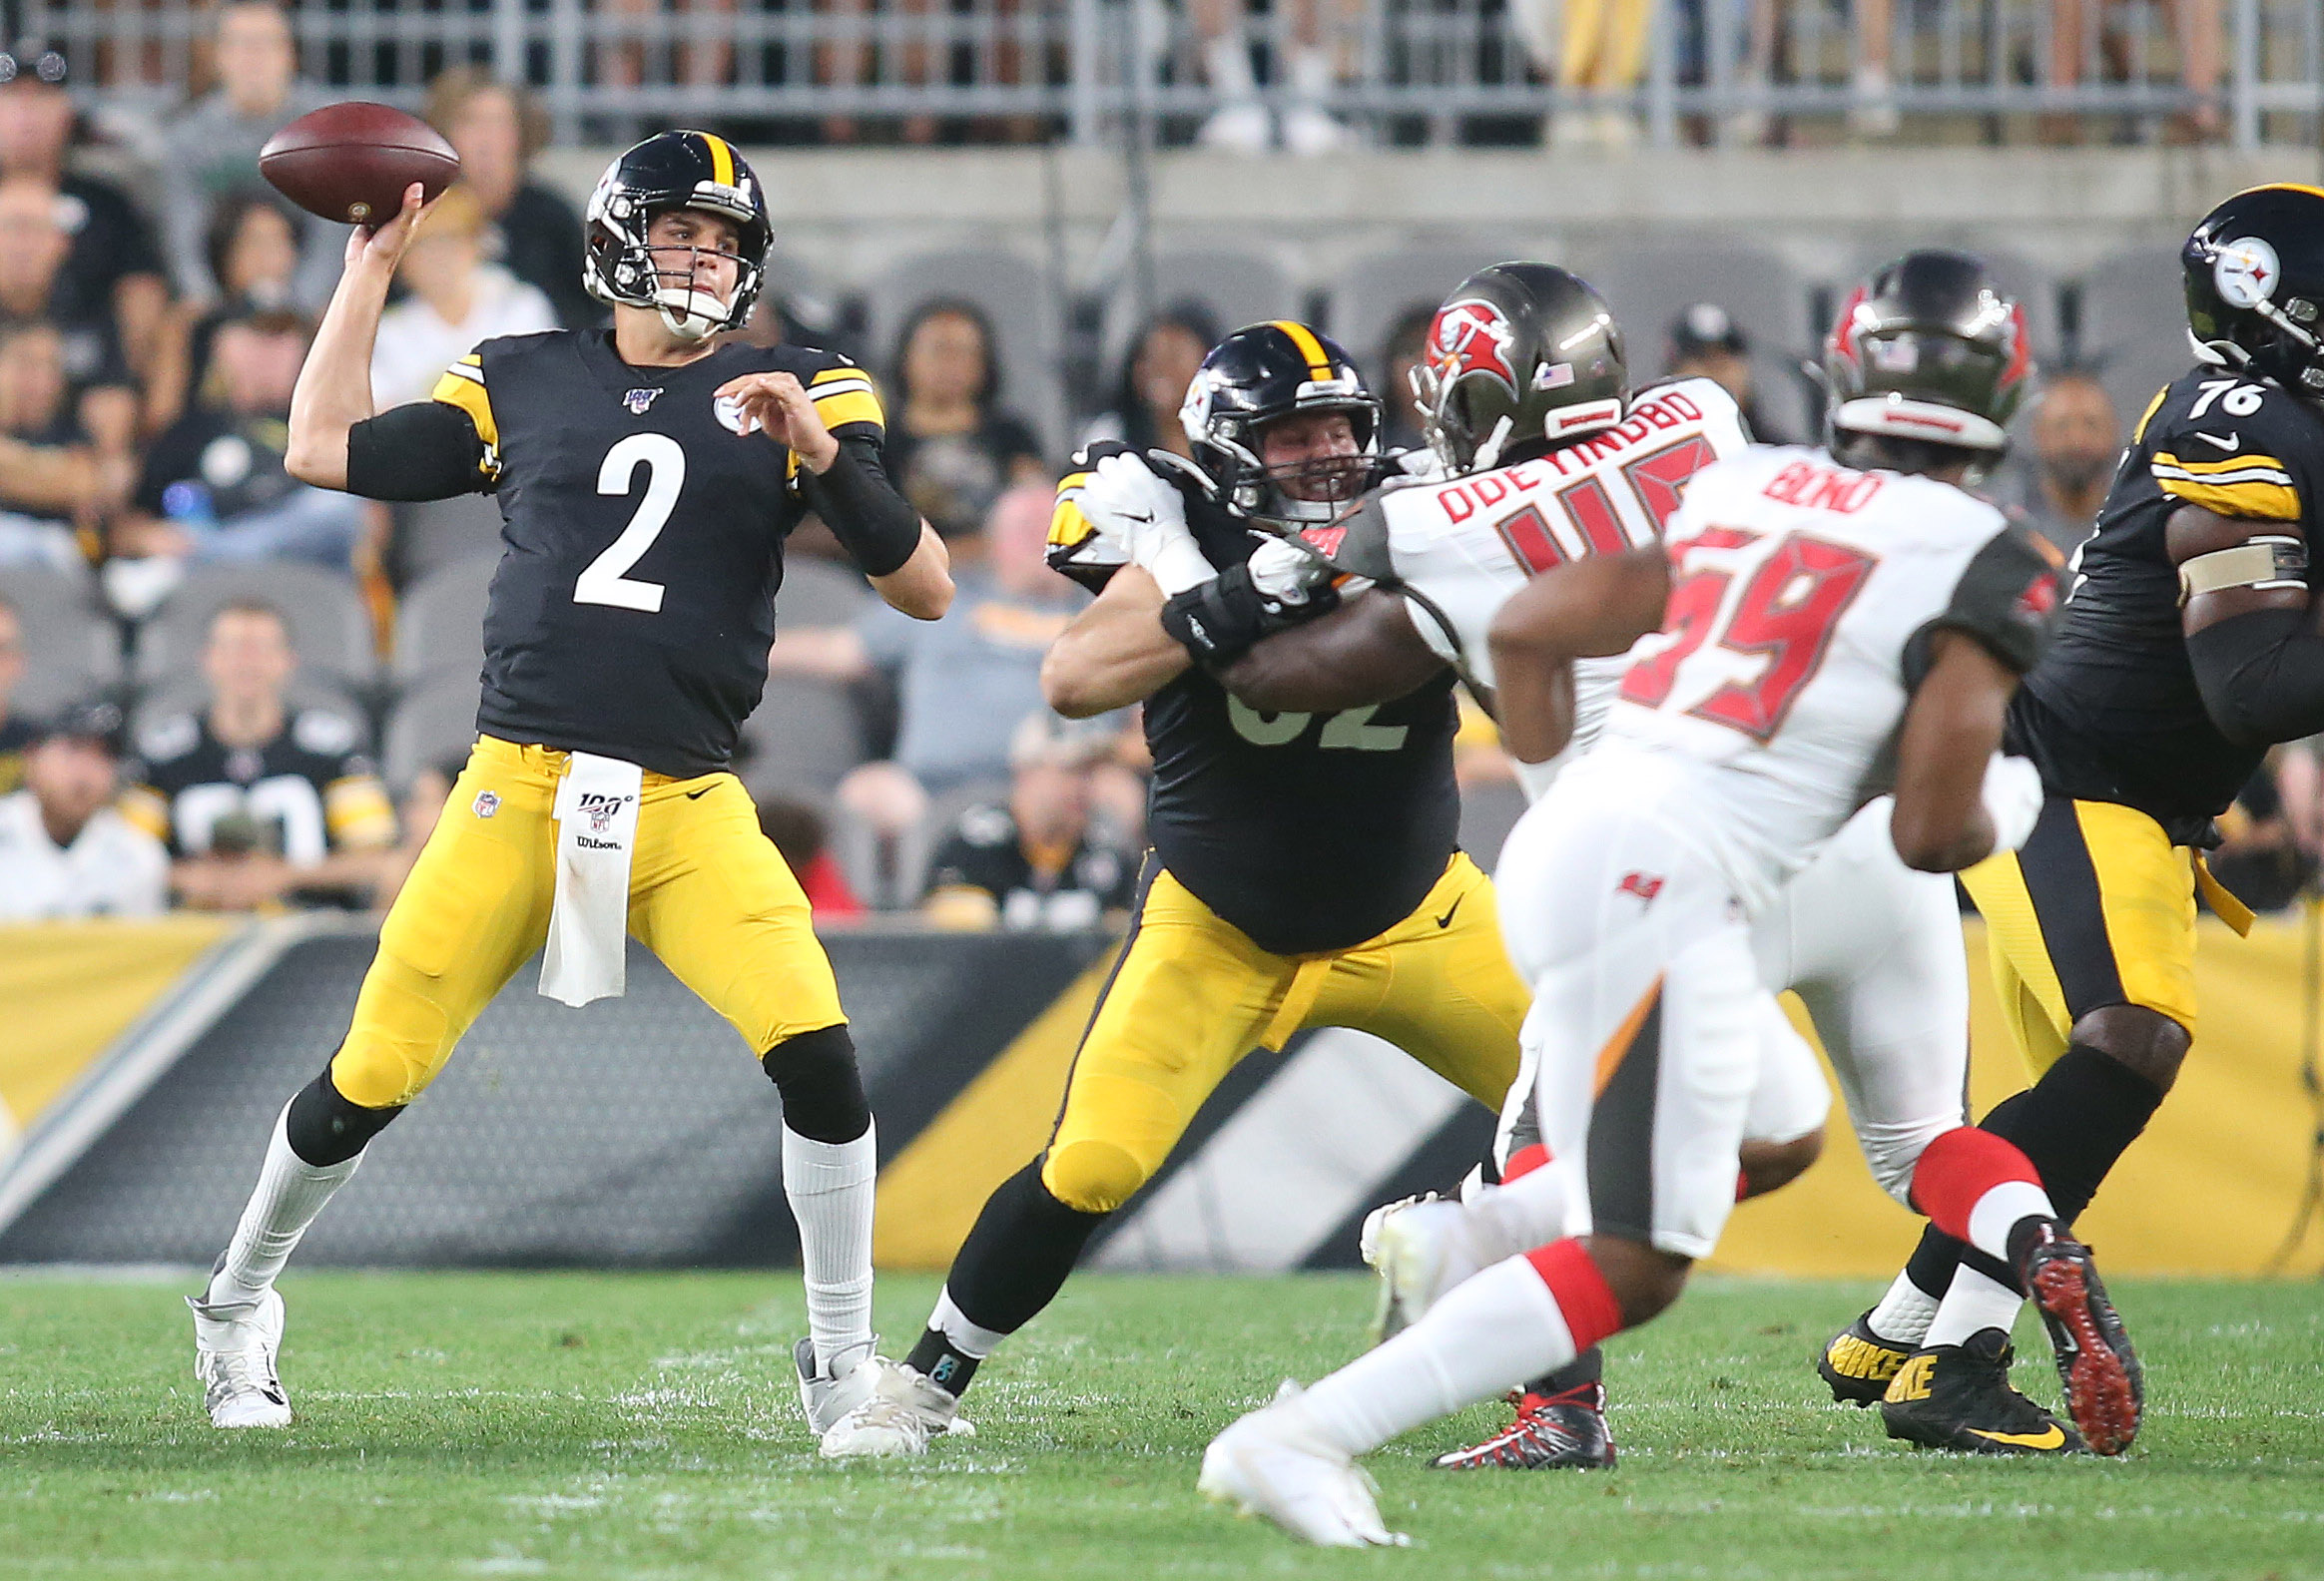 NFL: Preseason-Tampa Bay Buccaneers at Pittsburgh Steelers